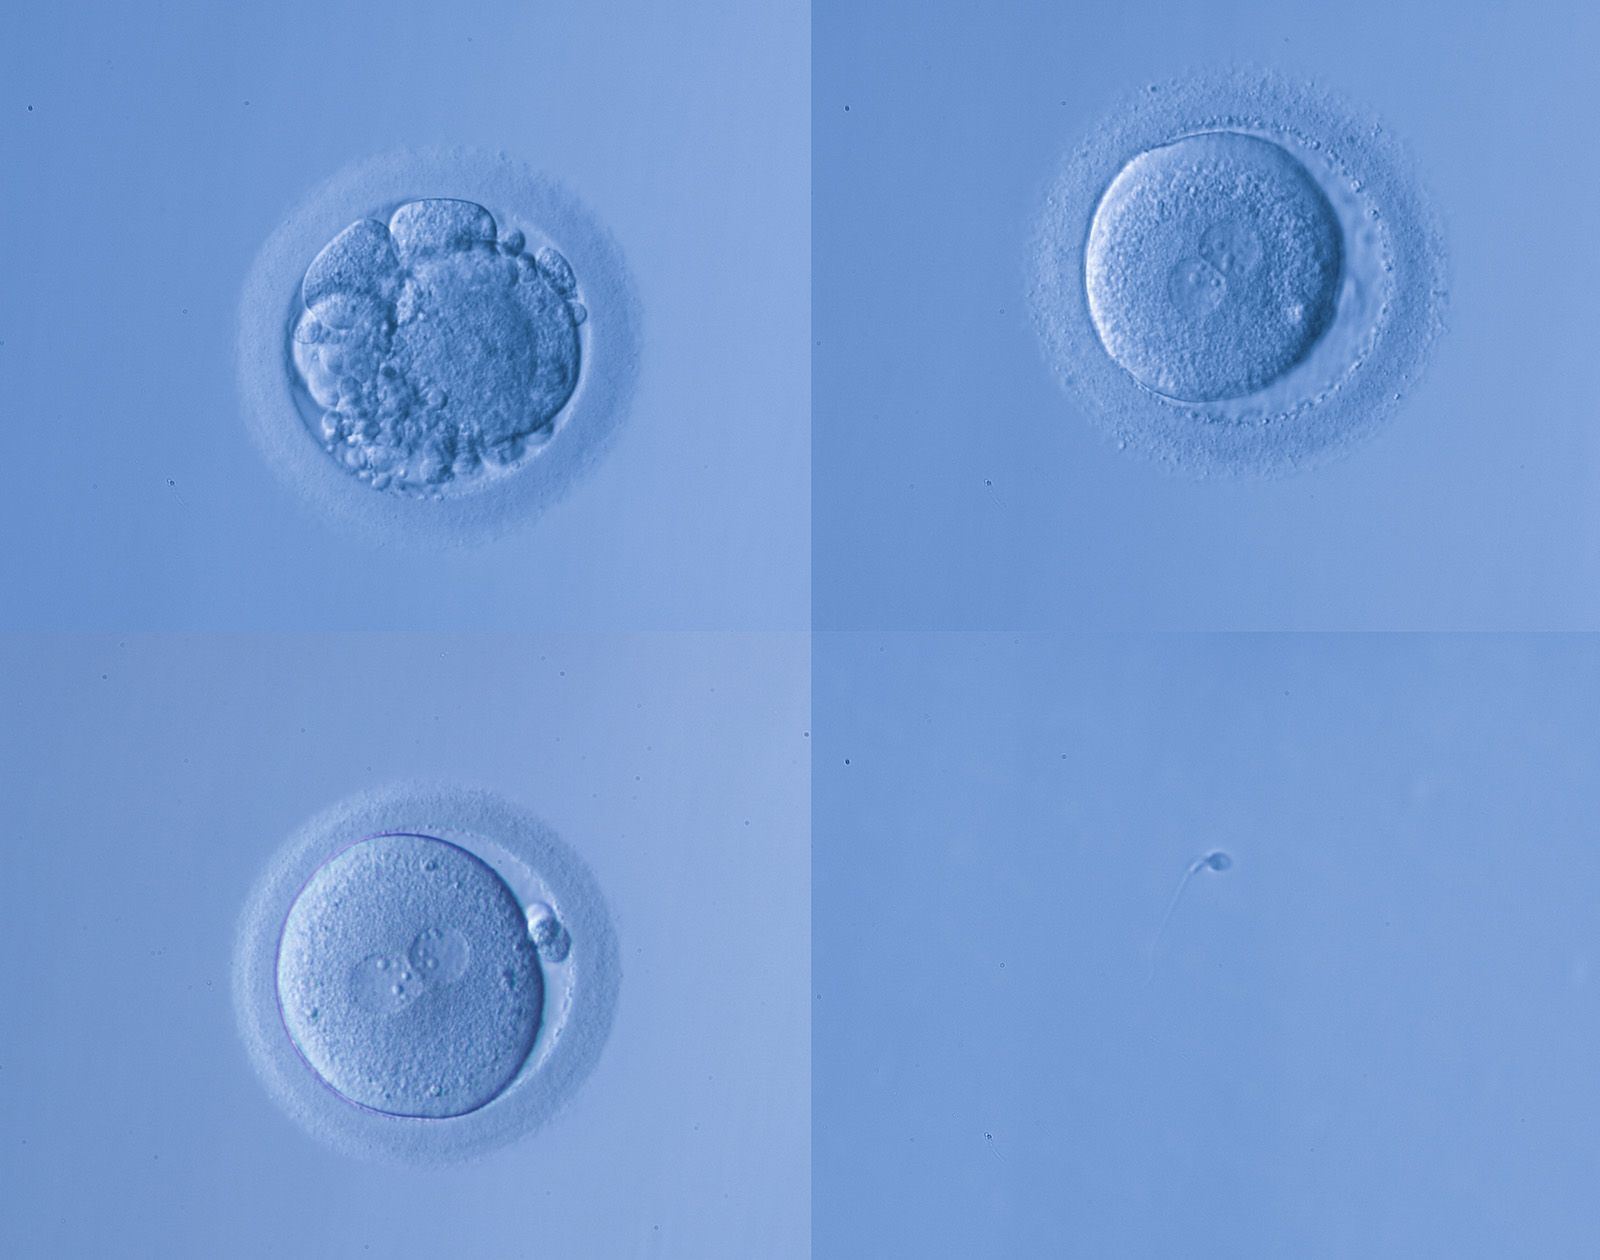 A fertilized egg becoming an embryo/blastocyst